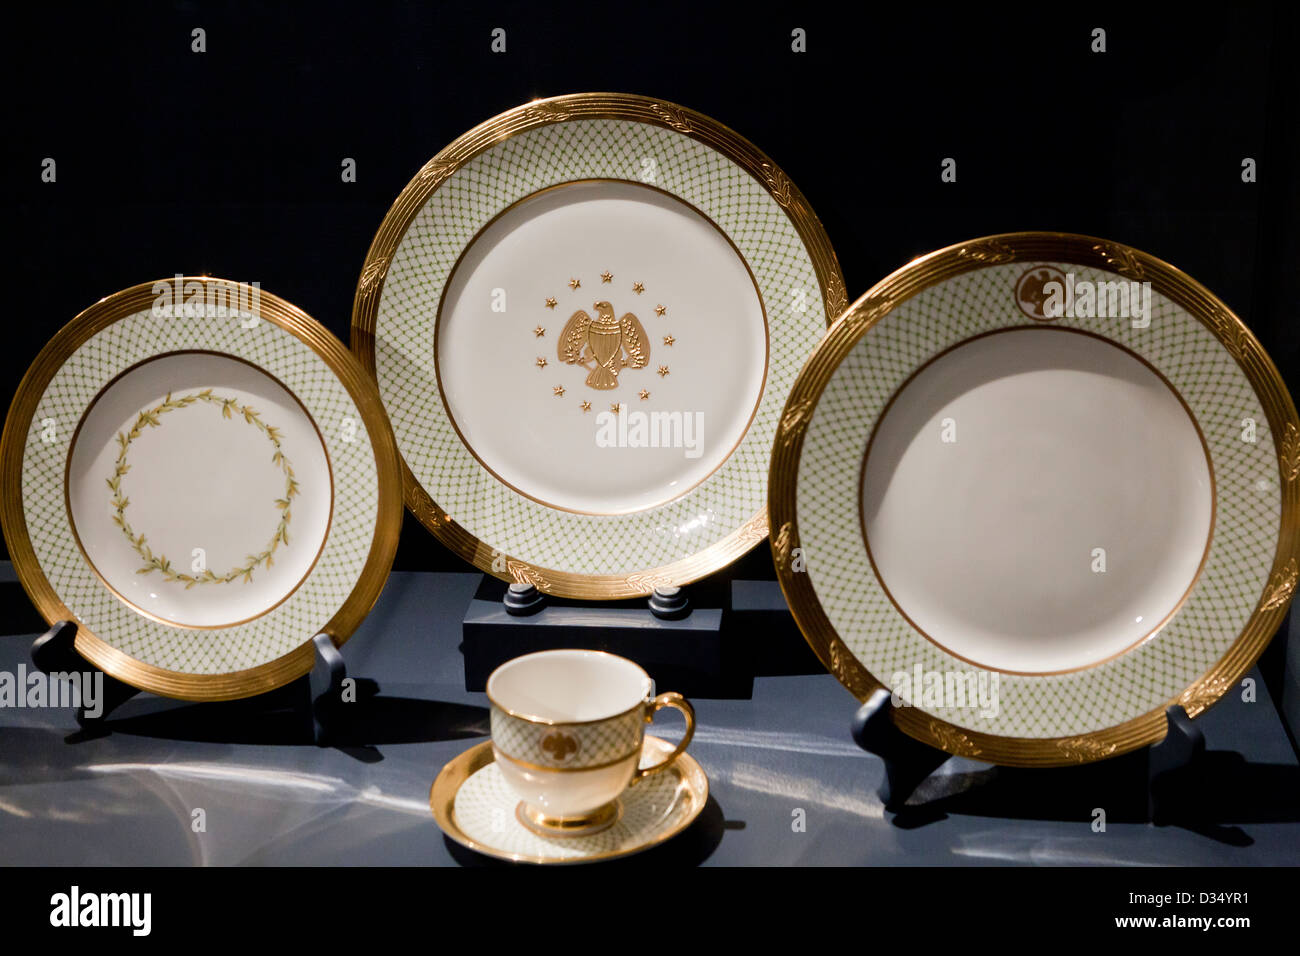 Laura Bush's White House state china set - Stock Image